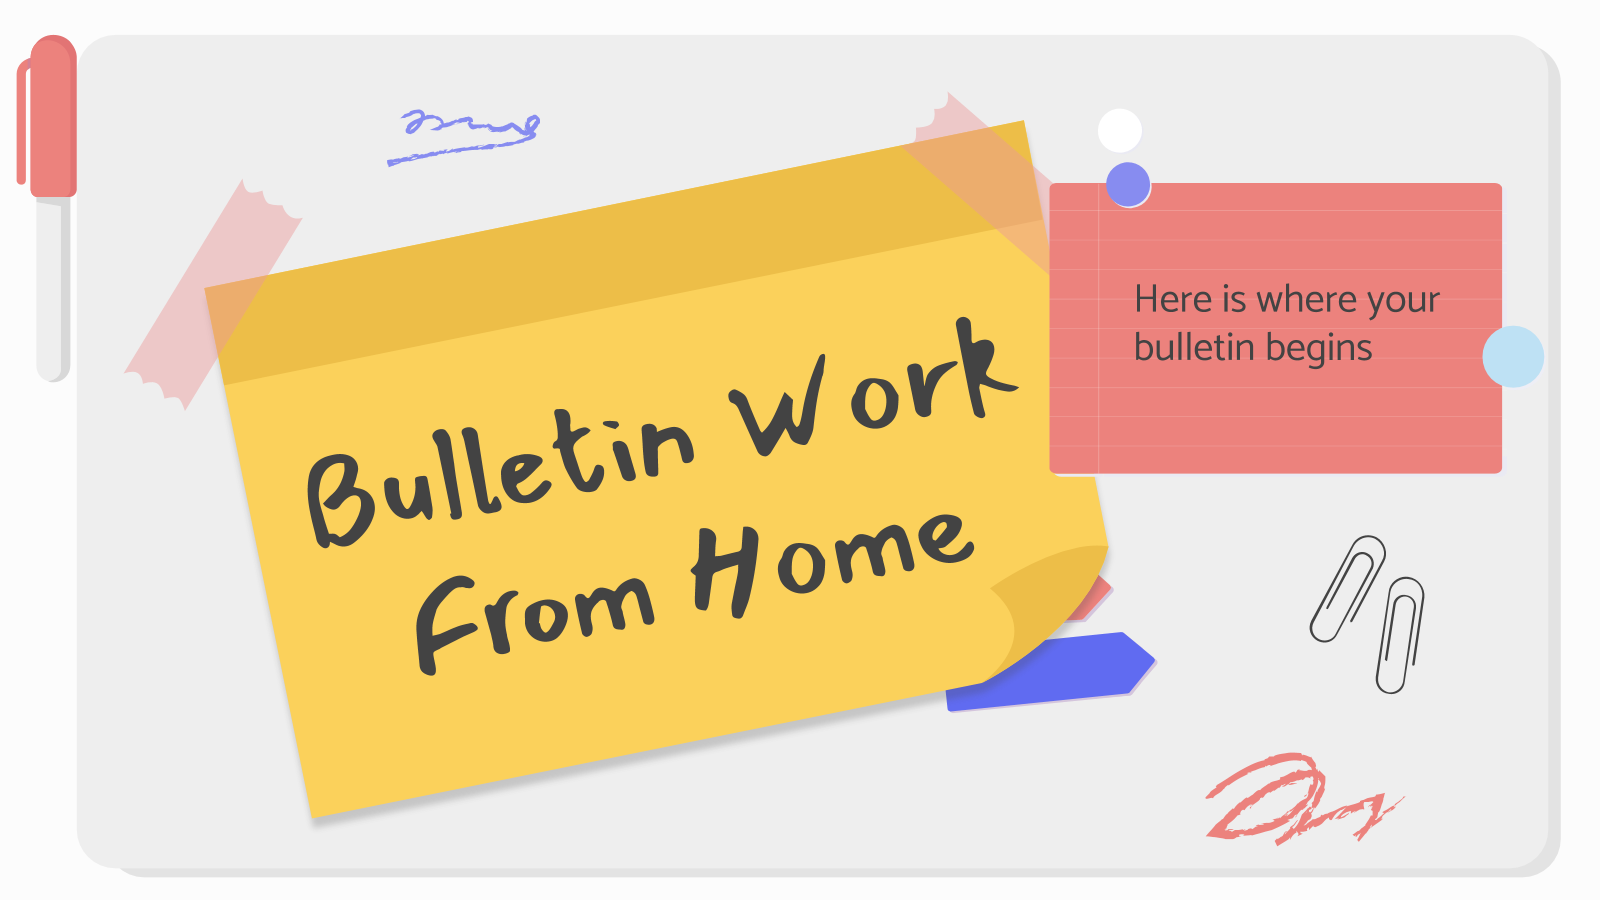 Bulletin Work from Home presentation template